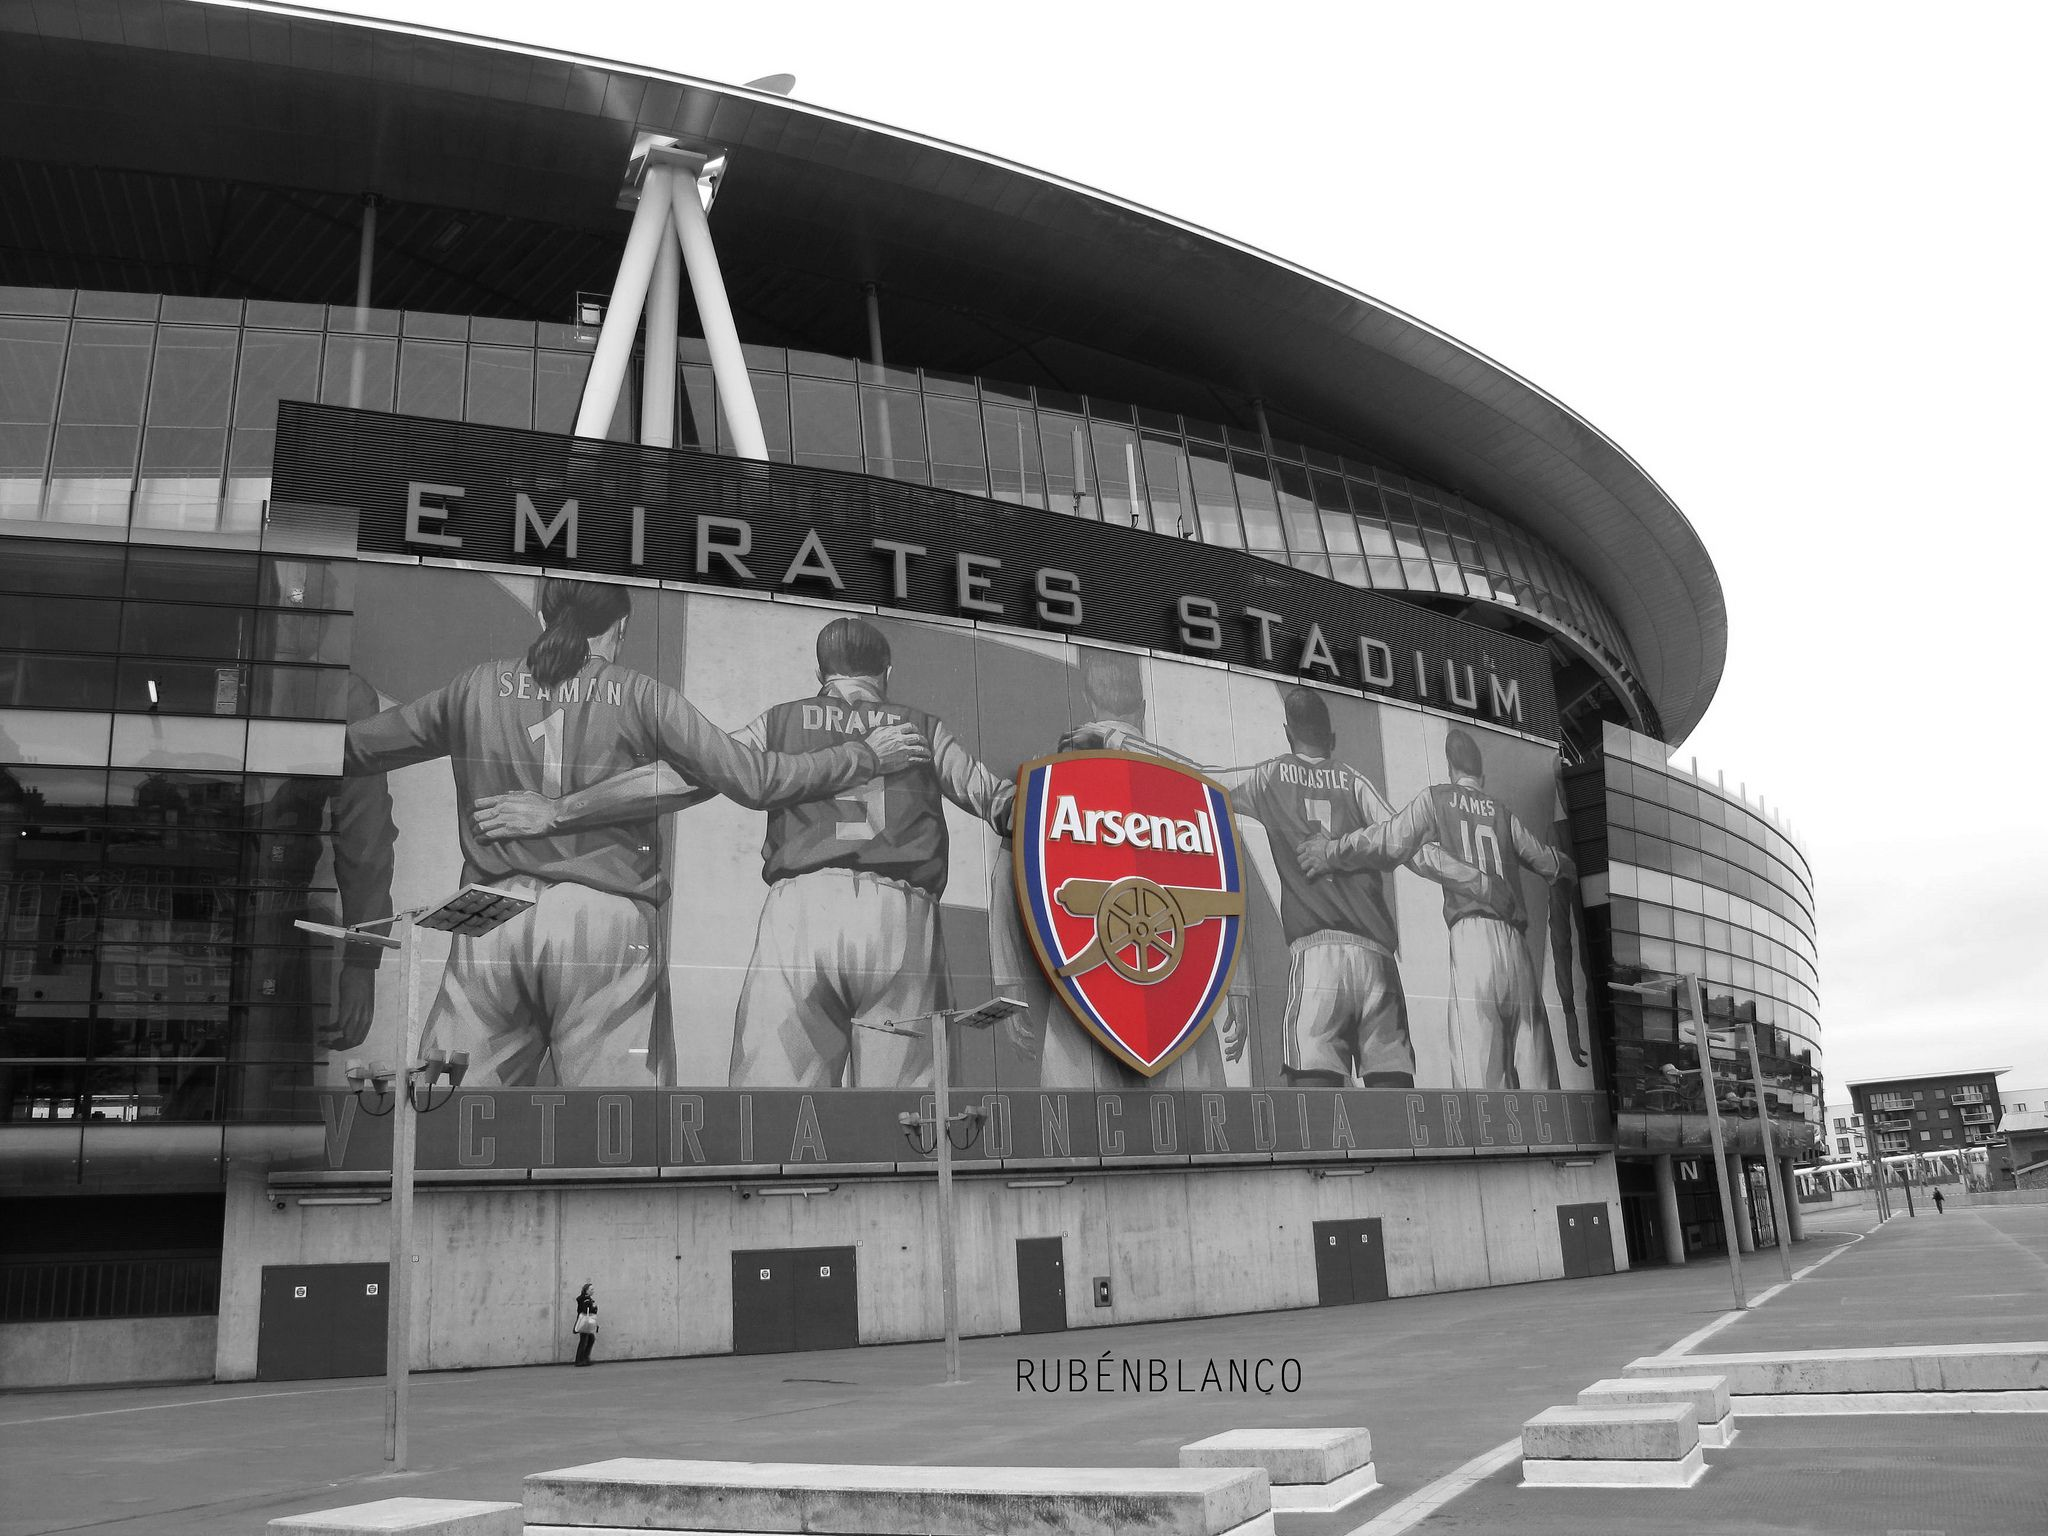 Arsenal Beat Everton At The Emirates Staidum Pictured Here To Go Through To The Semi Finals Of The Fa Cup We W Arsenal Football Team Arsenal Football Arsenal